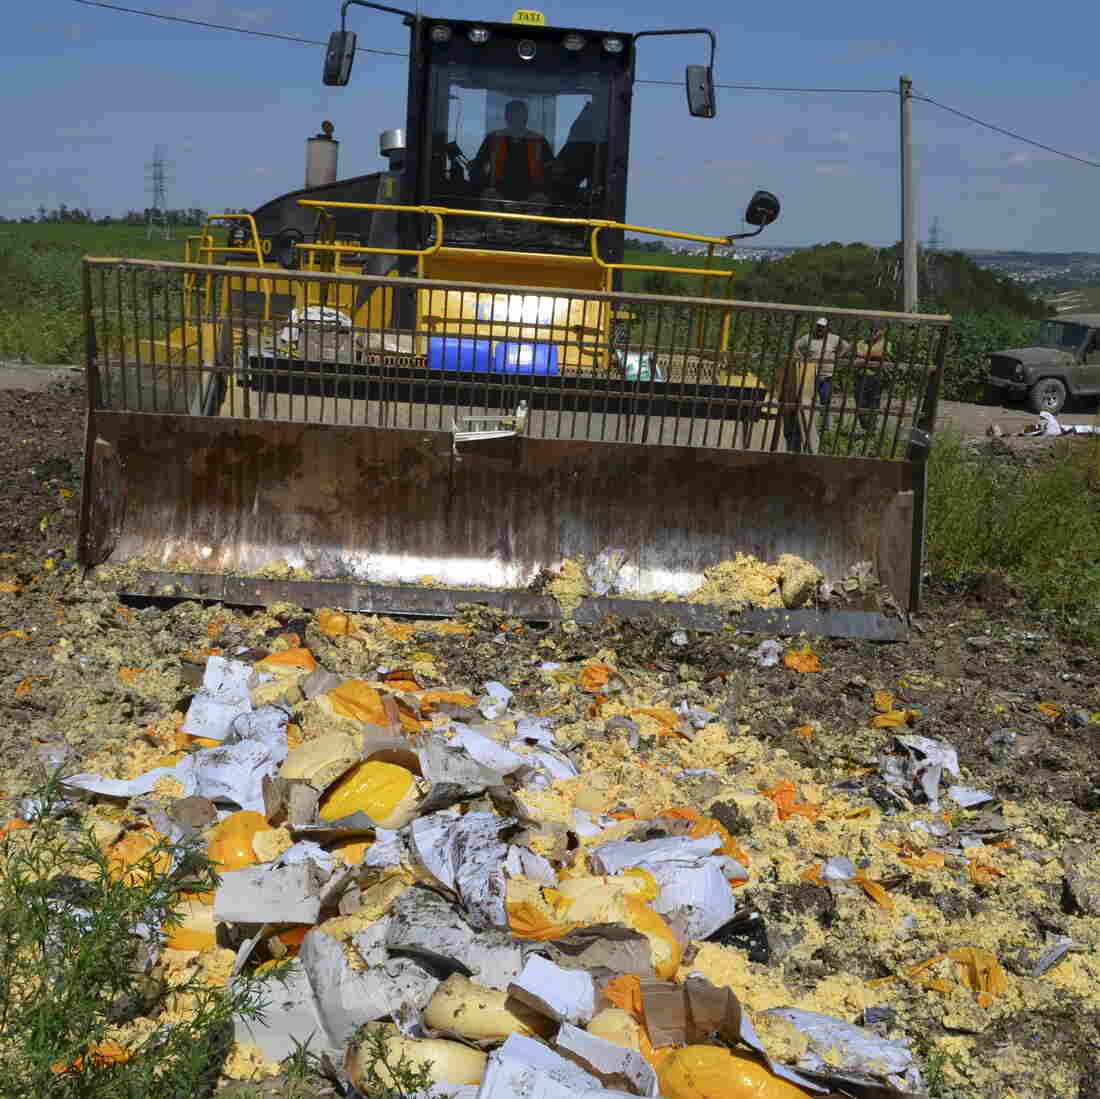 We Will Bury You: Russia Bulldozes Tons Of European Cheese, Other Banned Food